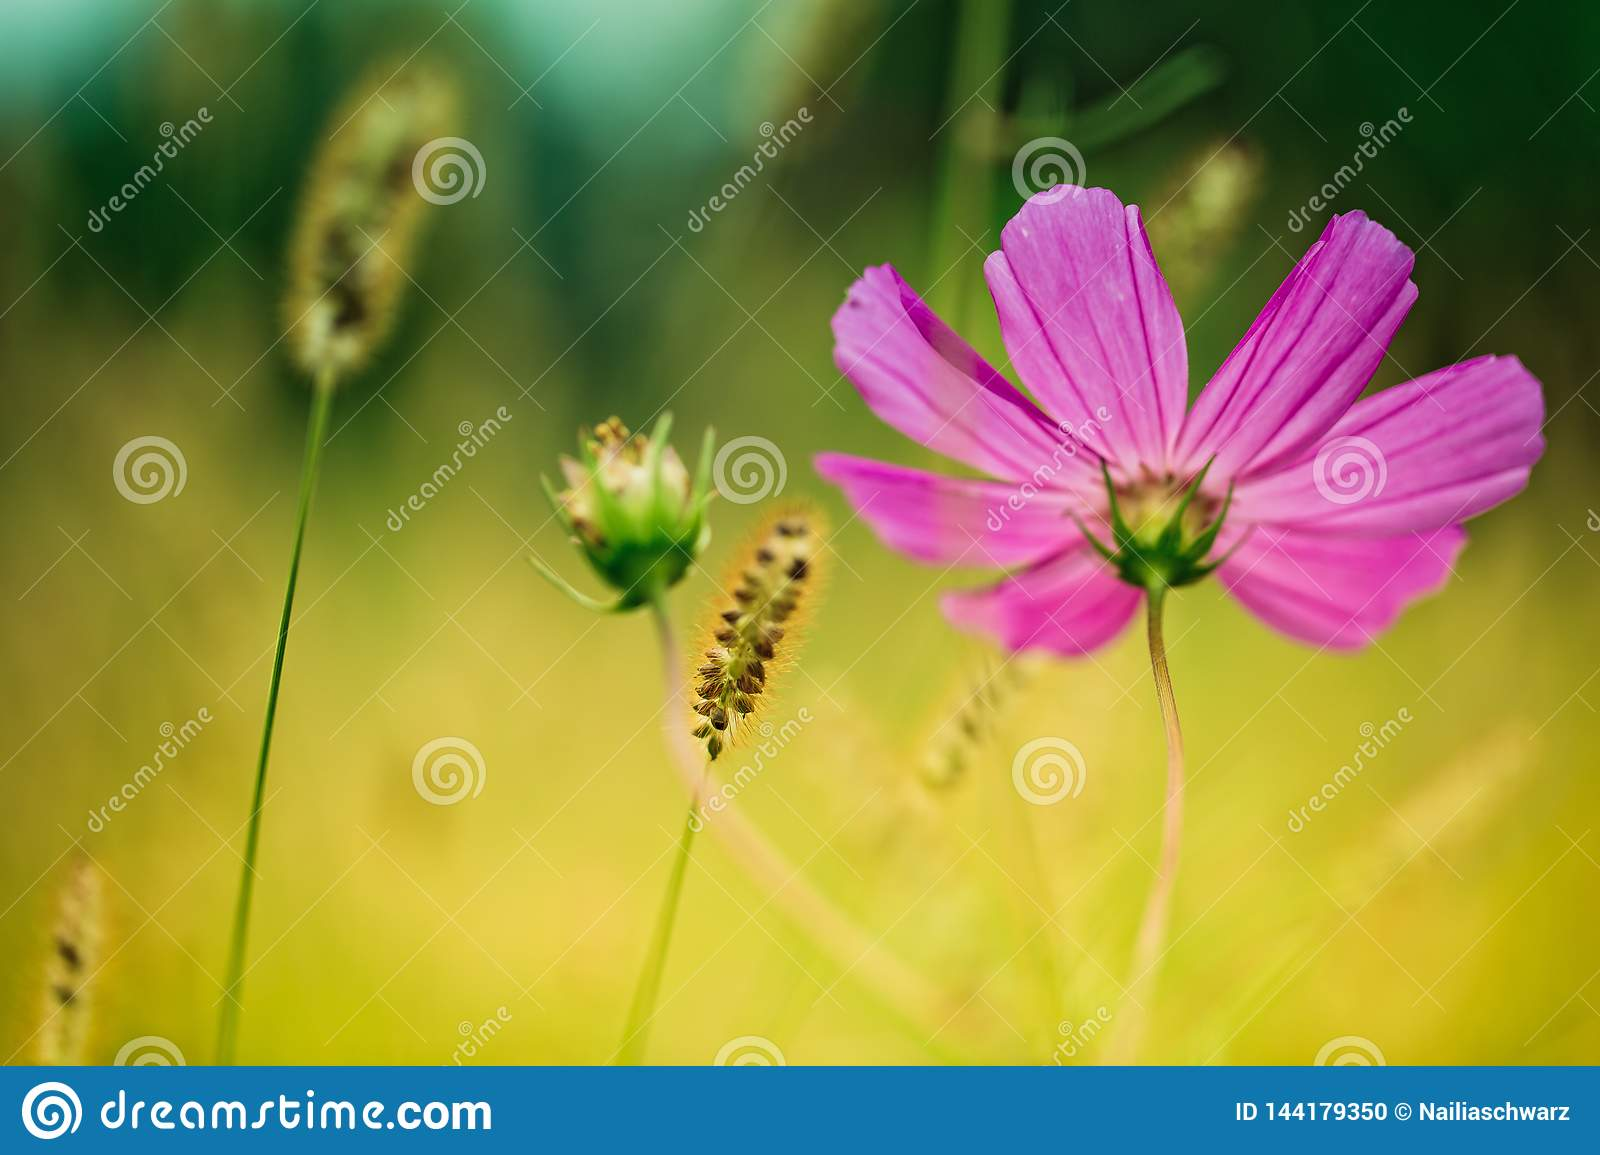 Flower on Summer Meadow